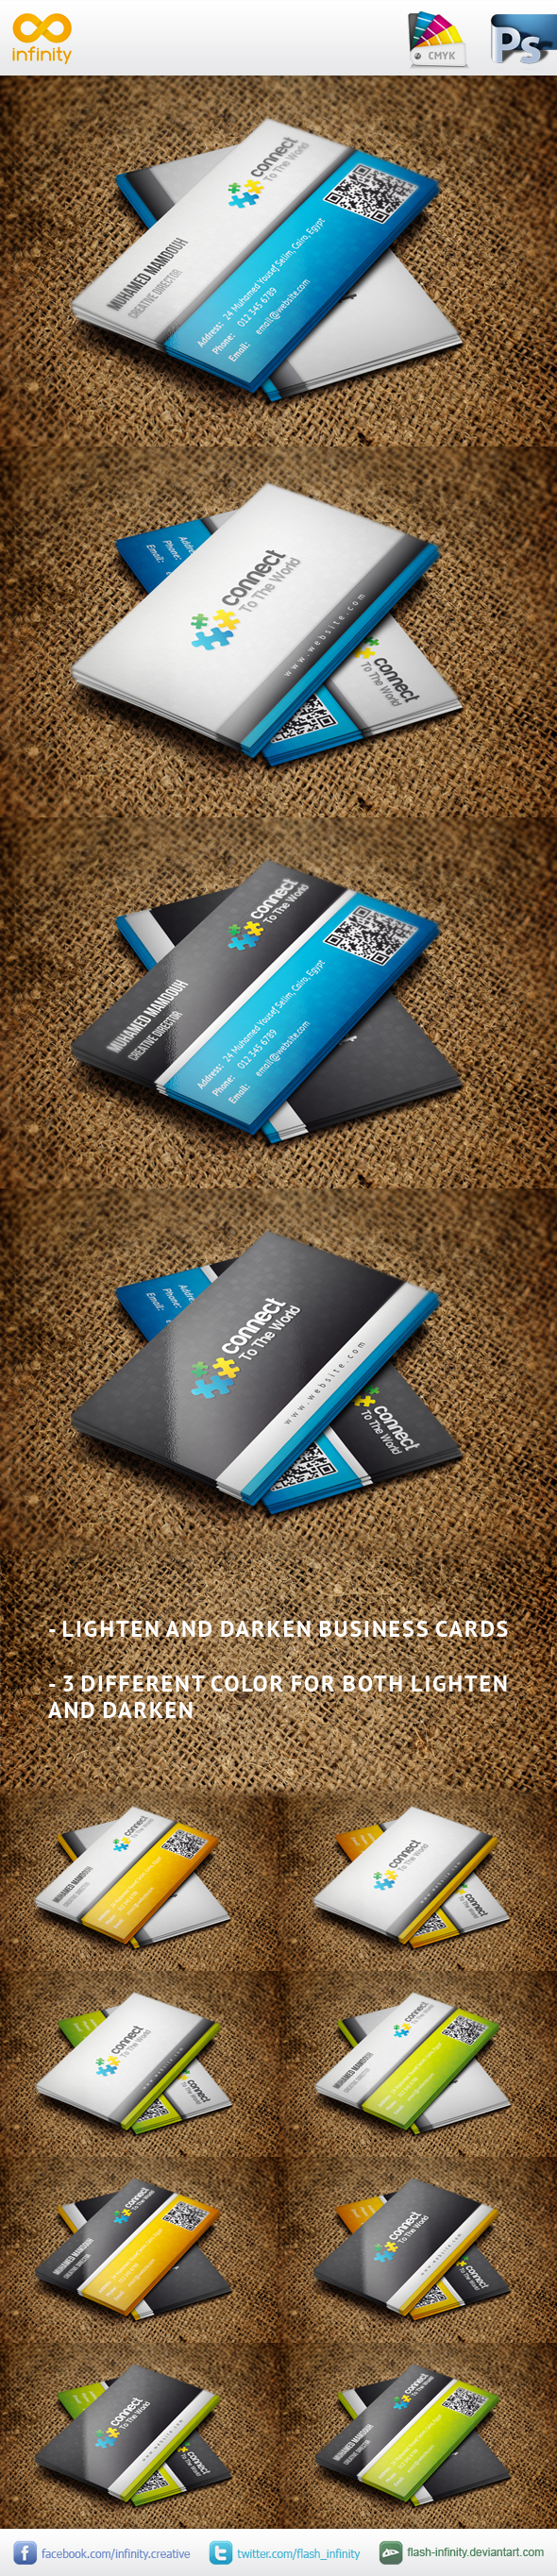 Classic style for the business cards. 2 versions (lighten, and darken) with 3 different colors for each version.  http://graphicriver.net/item/classic-business-card-v2/4252092?ref=pixilito